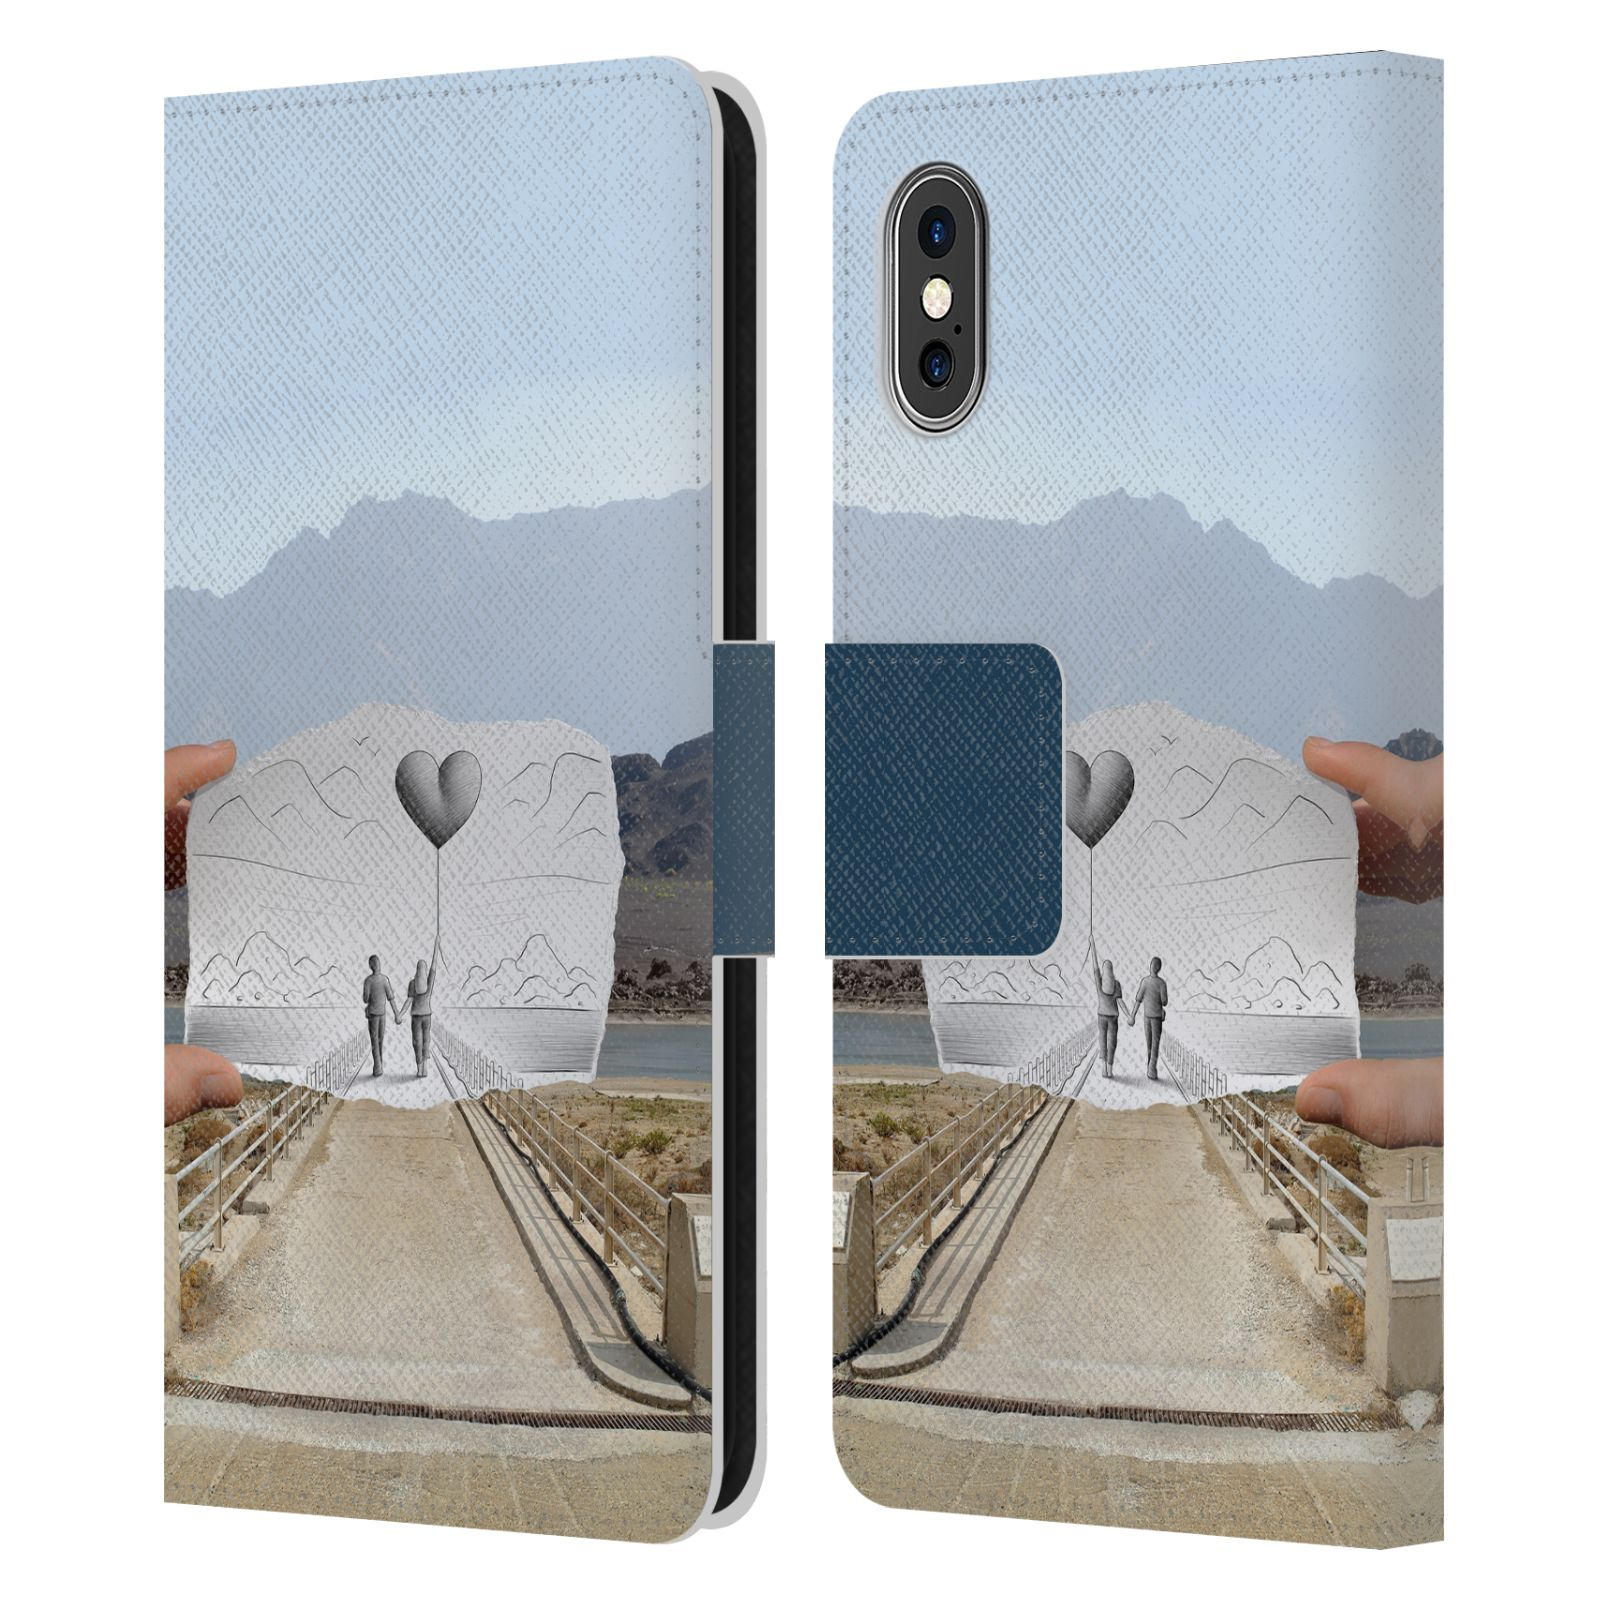 Official Ben Heine Pencil Vs Camera Love 2 Leather Book Wallet Case For Apple iPhone X / iPhone XS